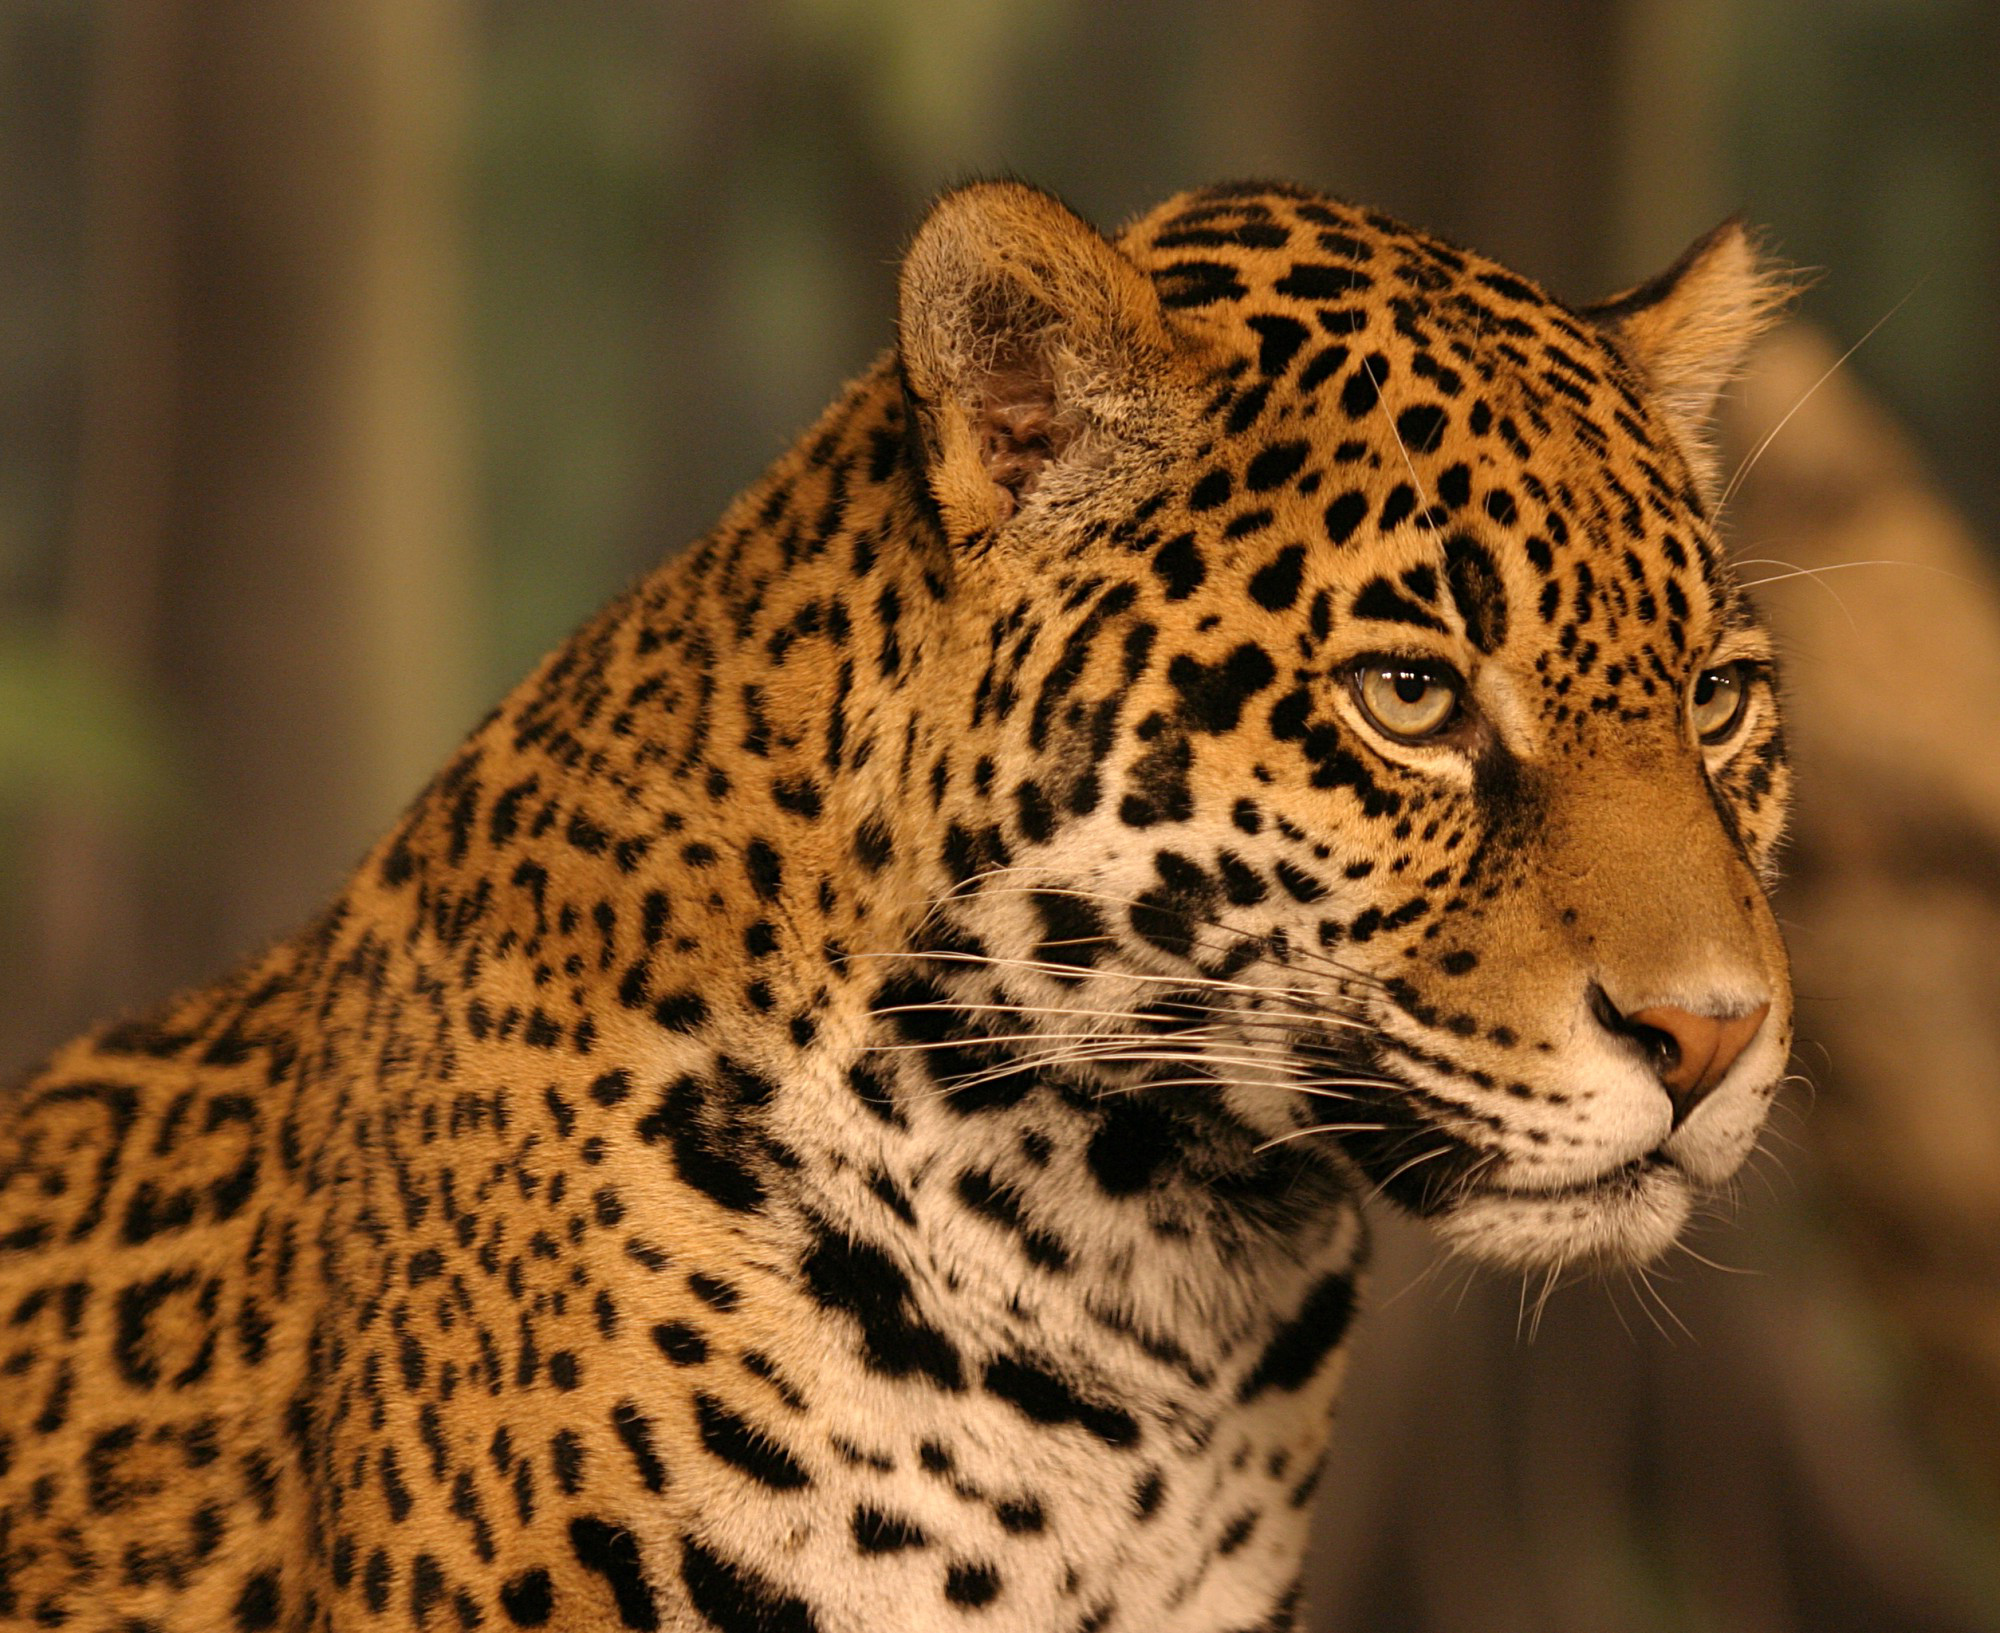 Animals Jaguars Wallpapers Hd Desktop And Mobile: Jaguar Wallpapers HD